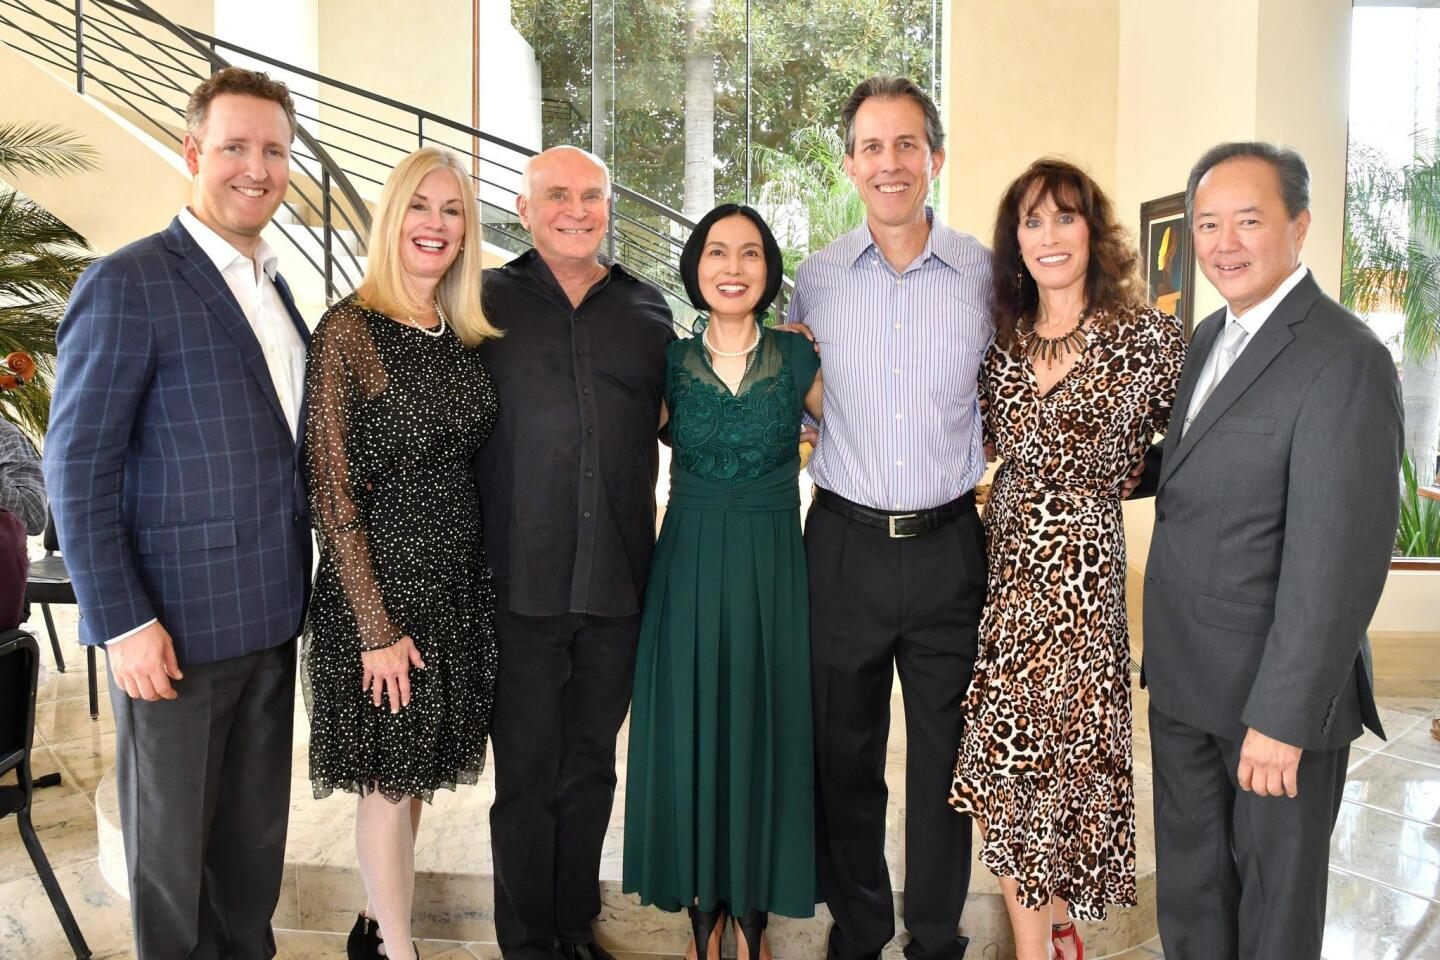 Michael Francis (MM music director), Dr. DeAnn Cary (event hostess), Bill Jech (event host), Jing Bourgeois (event chair) and Jim Freeman, Nancy Laturno (MM executive director), Hernan Constantino (MMYO music director)